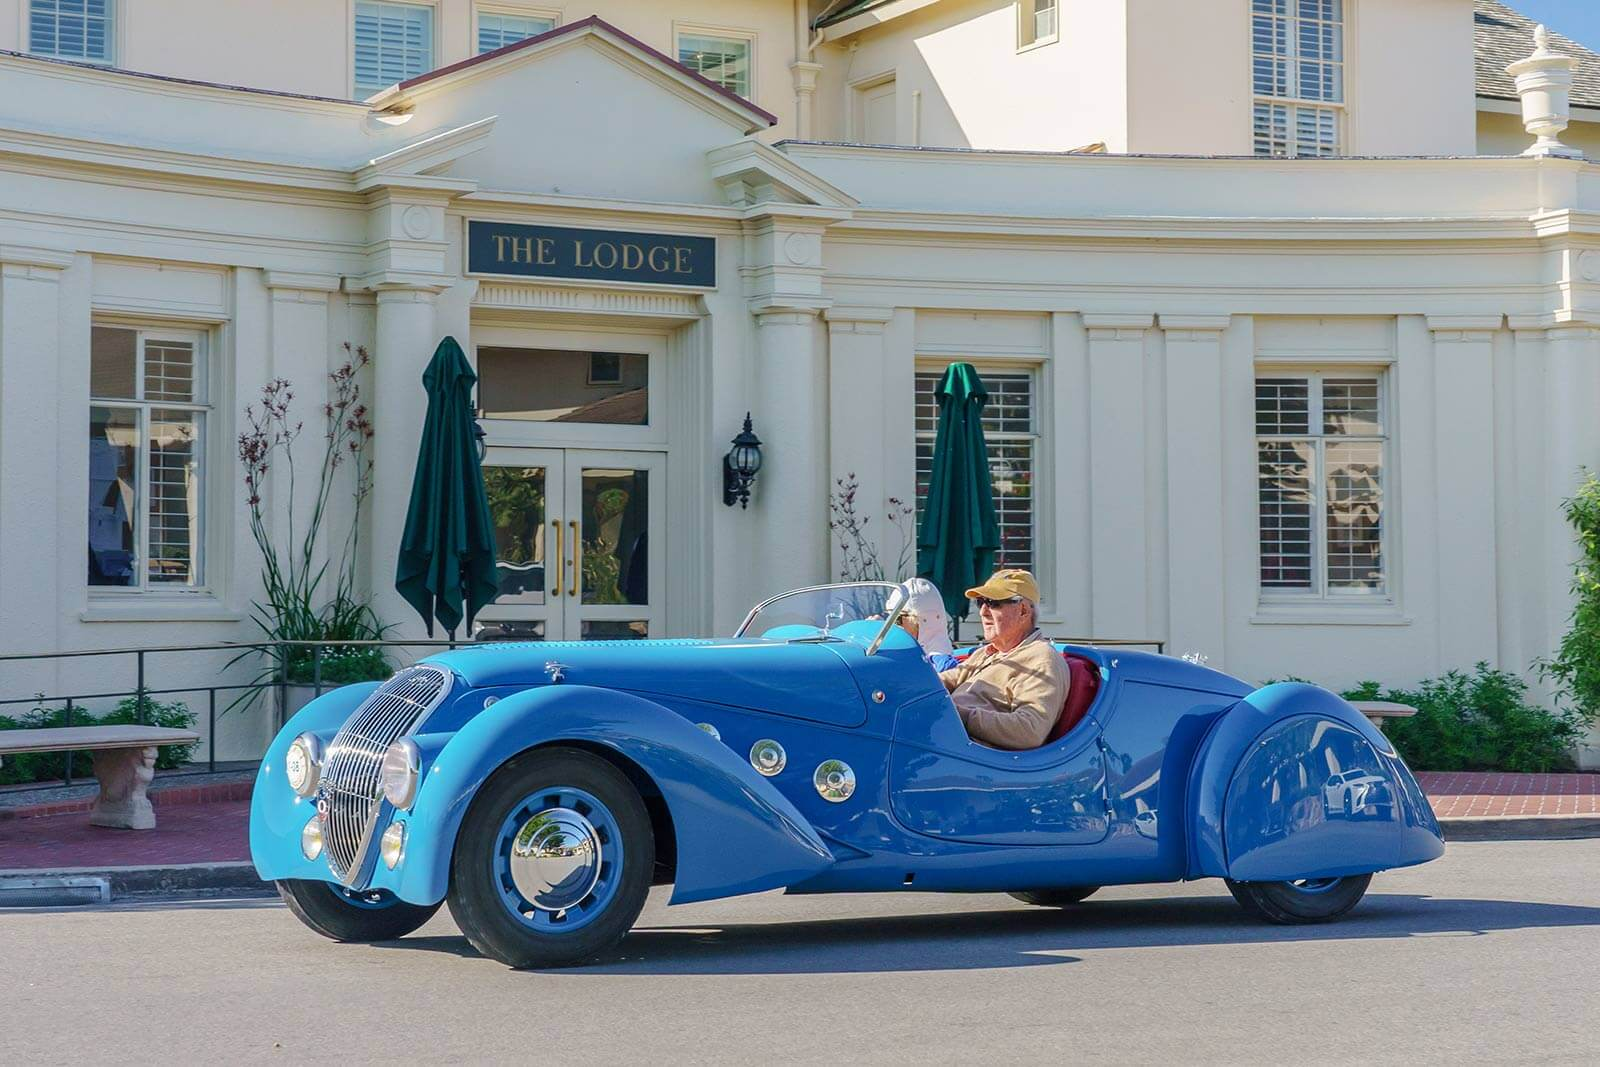 The Pebble Beach Tour d'Elegance drives past The Lodge at Pebble Beach.